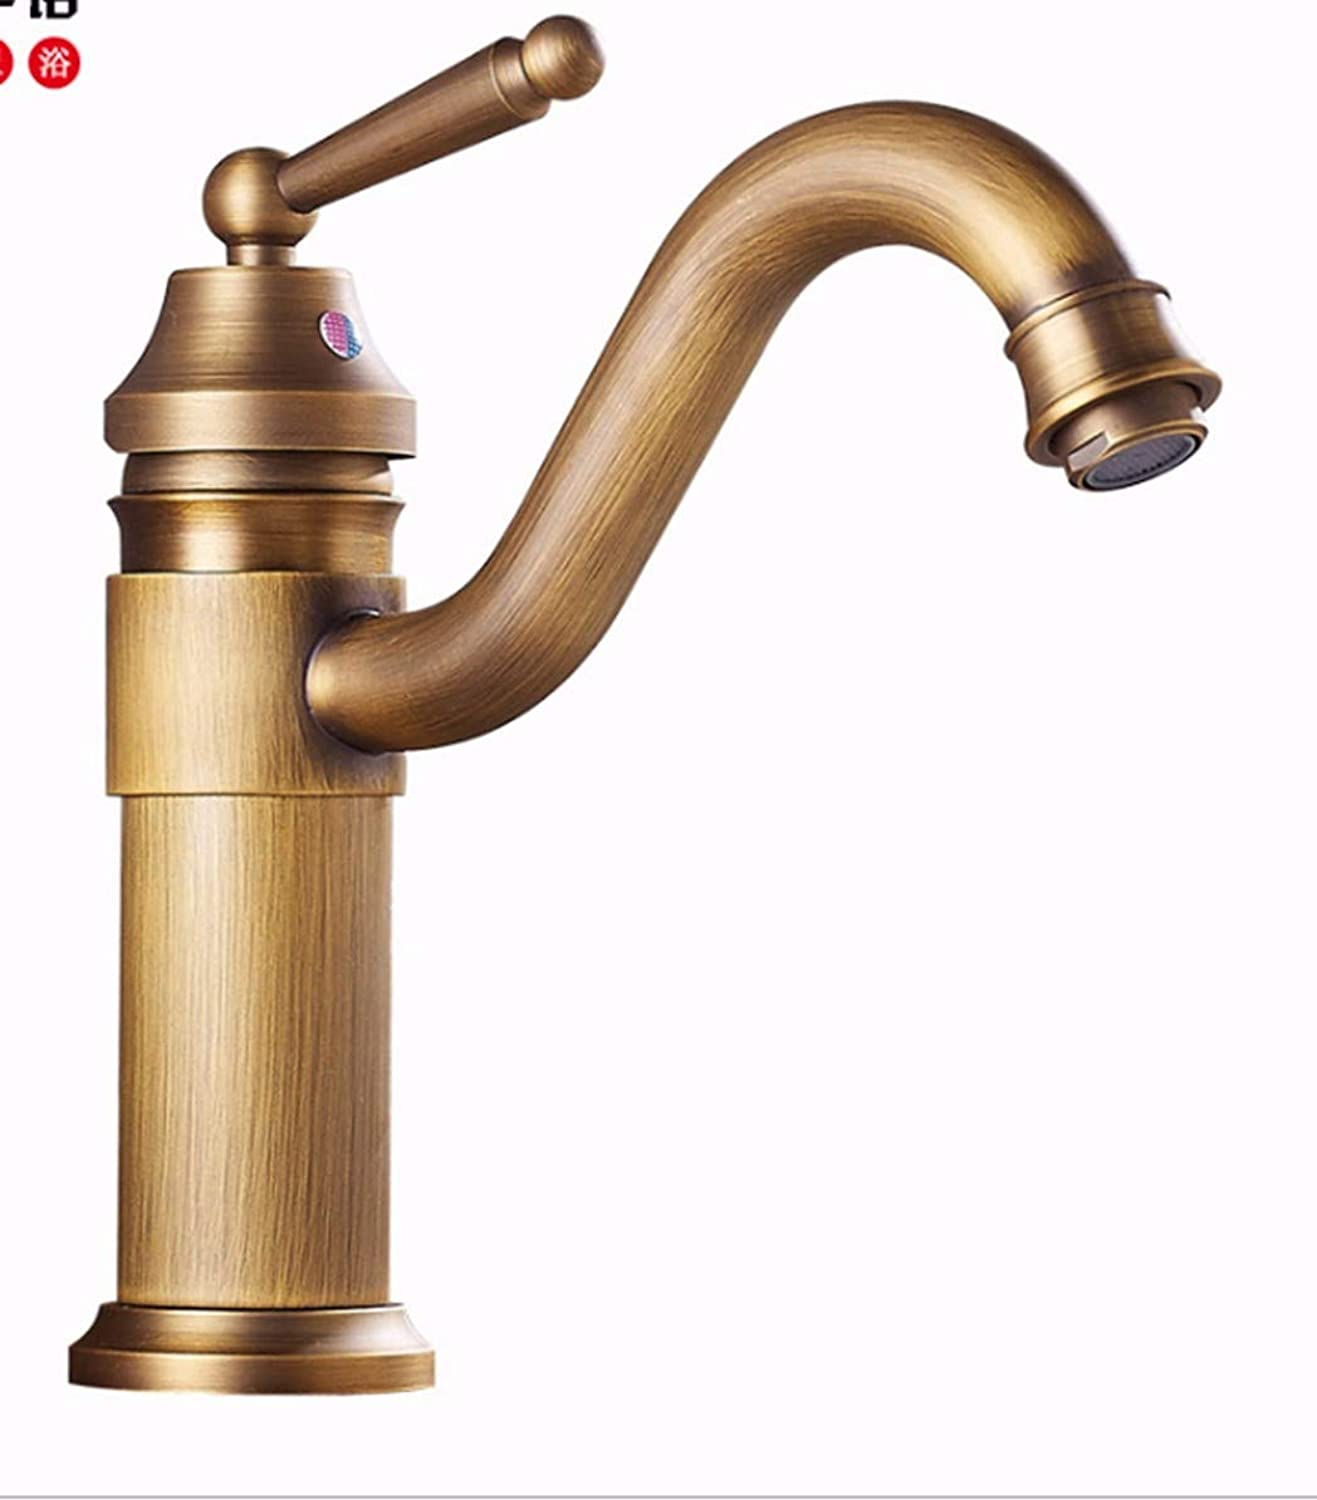 GiiWii Faucet Retro Copper redatable Tap for Kitchen Washbasin Sink Hot and Cold Water Mixing,B